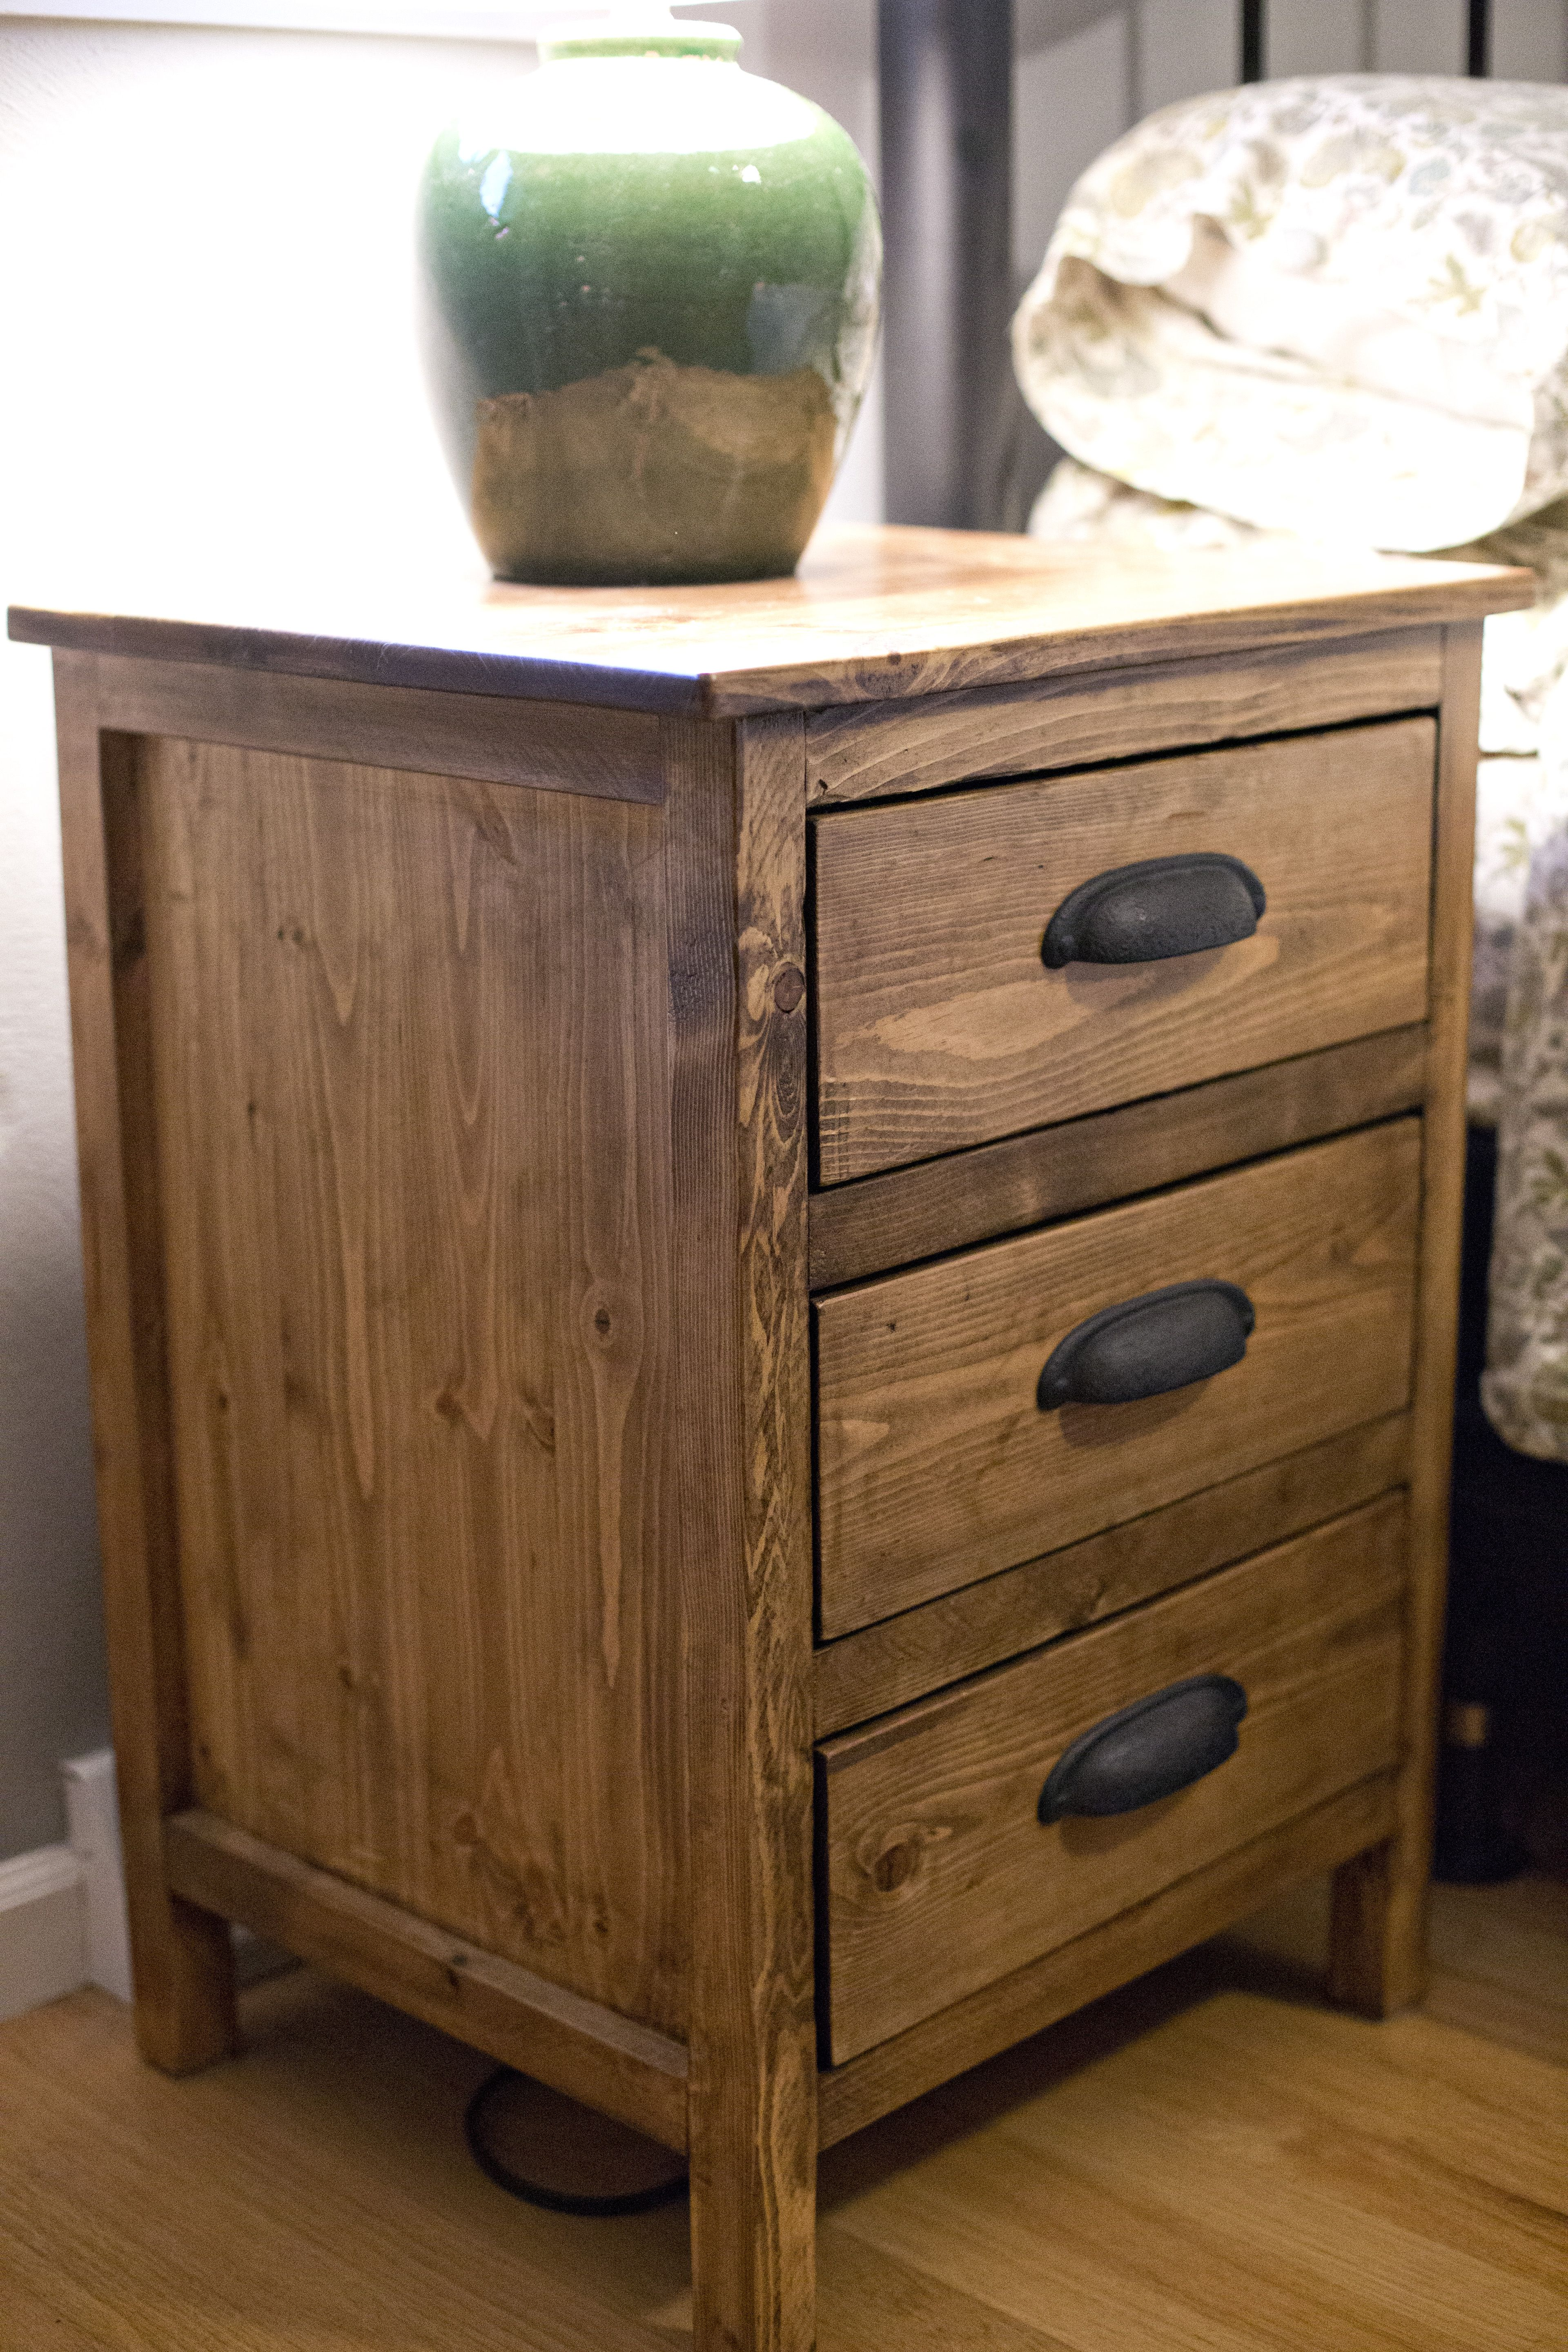 Reclaimed wood night stand do it yourself home projects from ana reclaimed wood night stand do it yourself home projects from ana white solutioingenieria Image collections